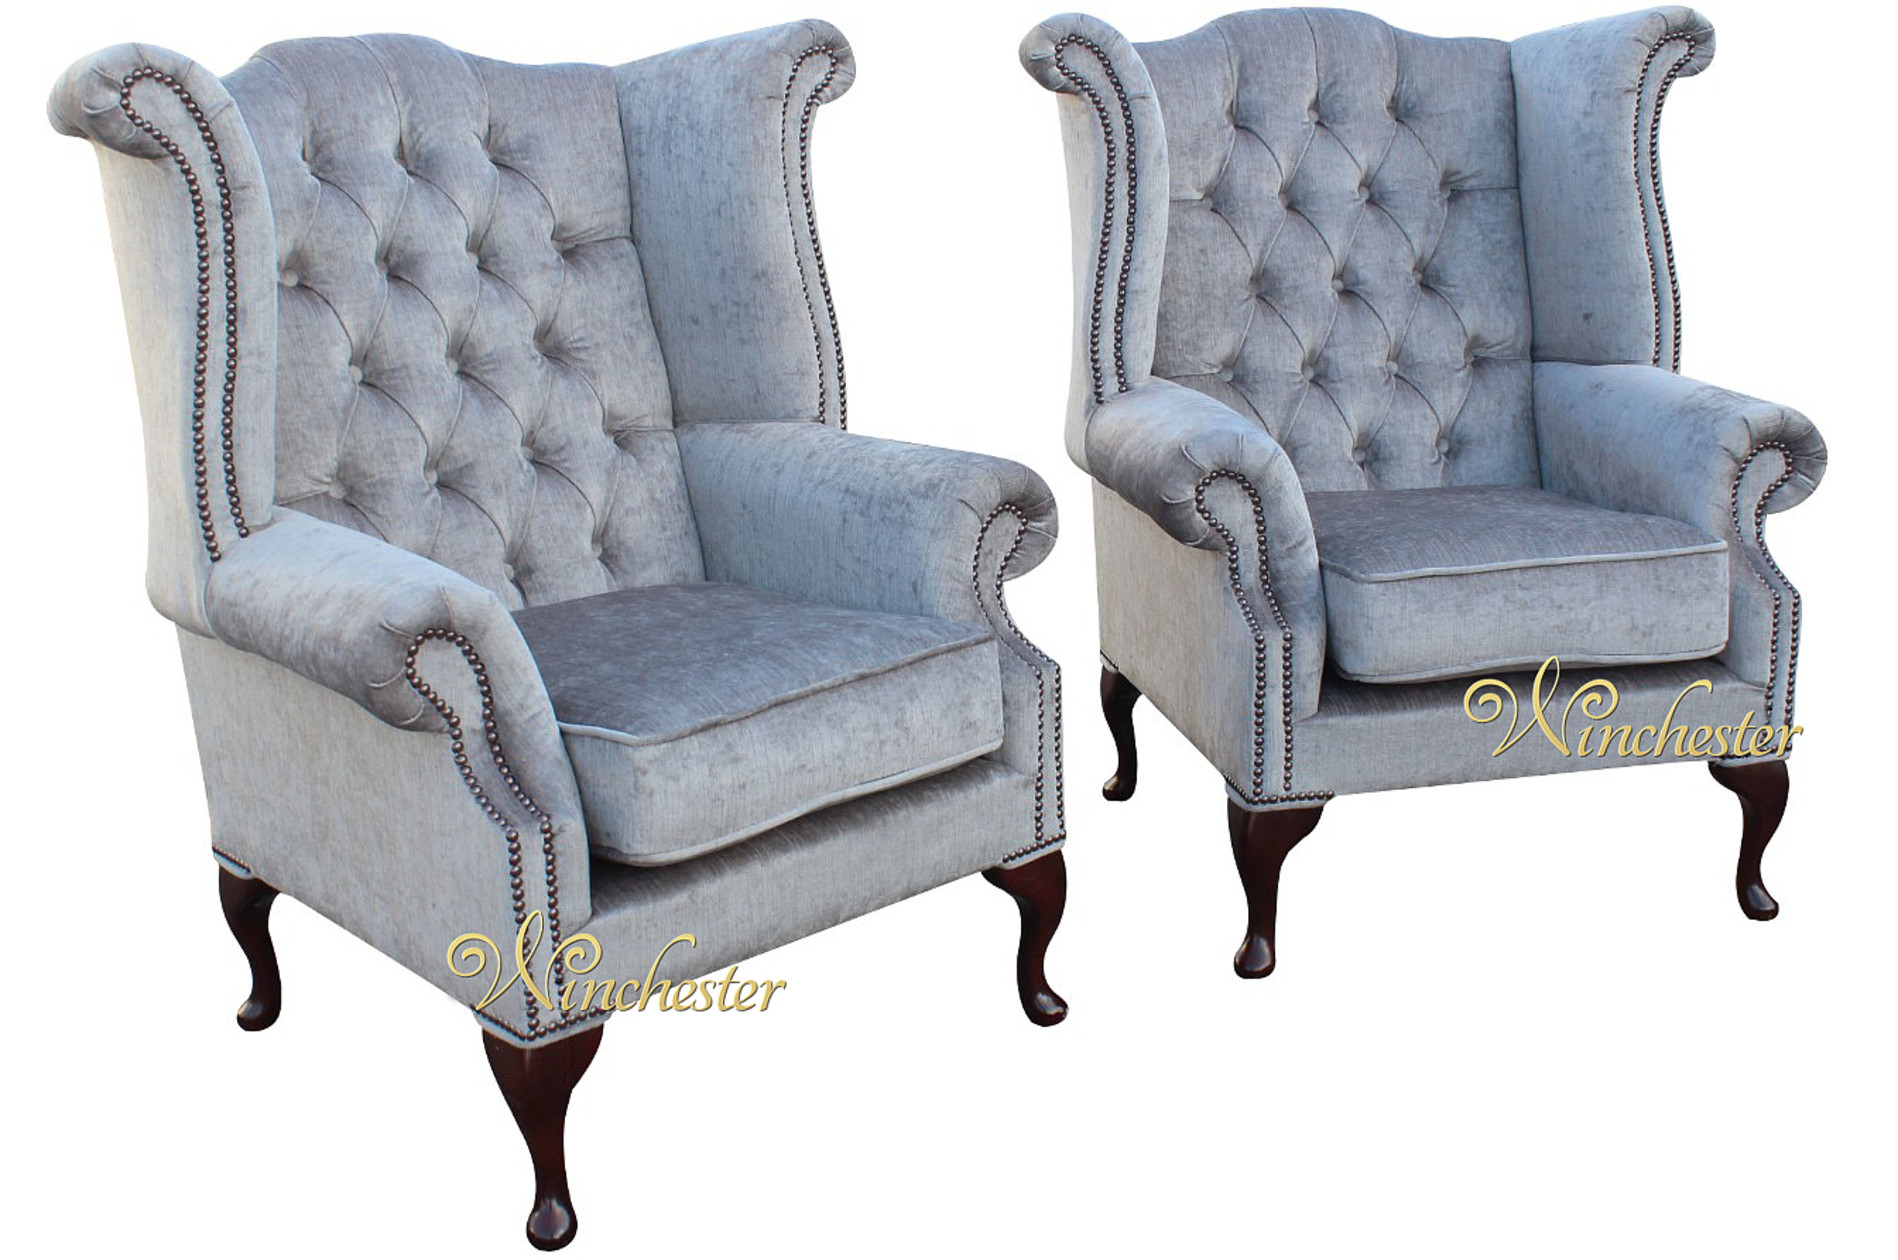 Chesterfield offer pair fabric queen anne high back wing chairs perla